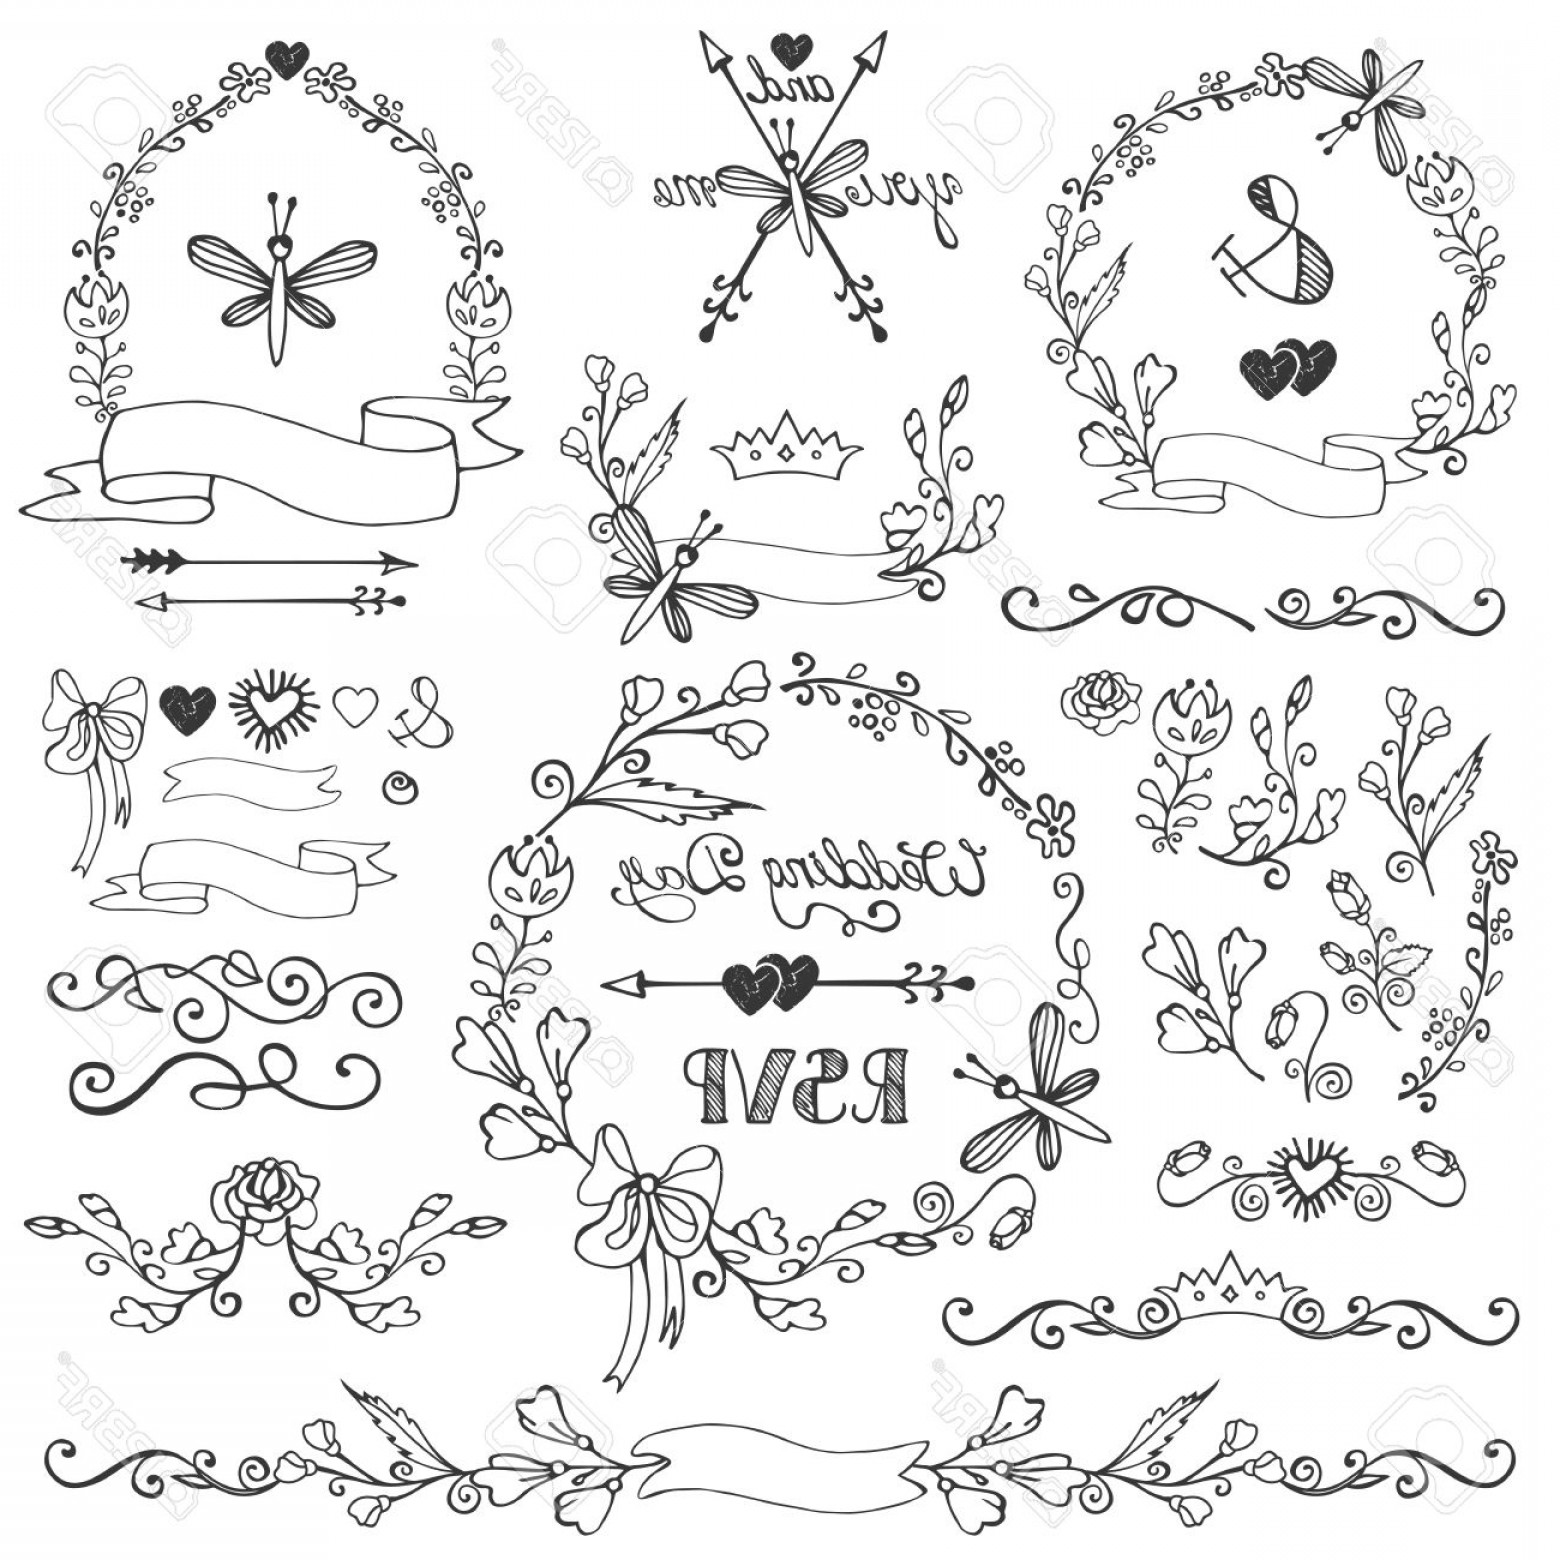 Arrow Border Frame Vector: Photostock Vector Wedding Doodles Floral Decor Elements Set Swirling Border Bloom Flowers Branches Wreath Frames Corne